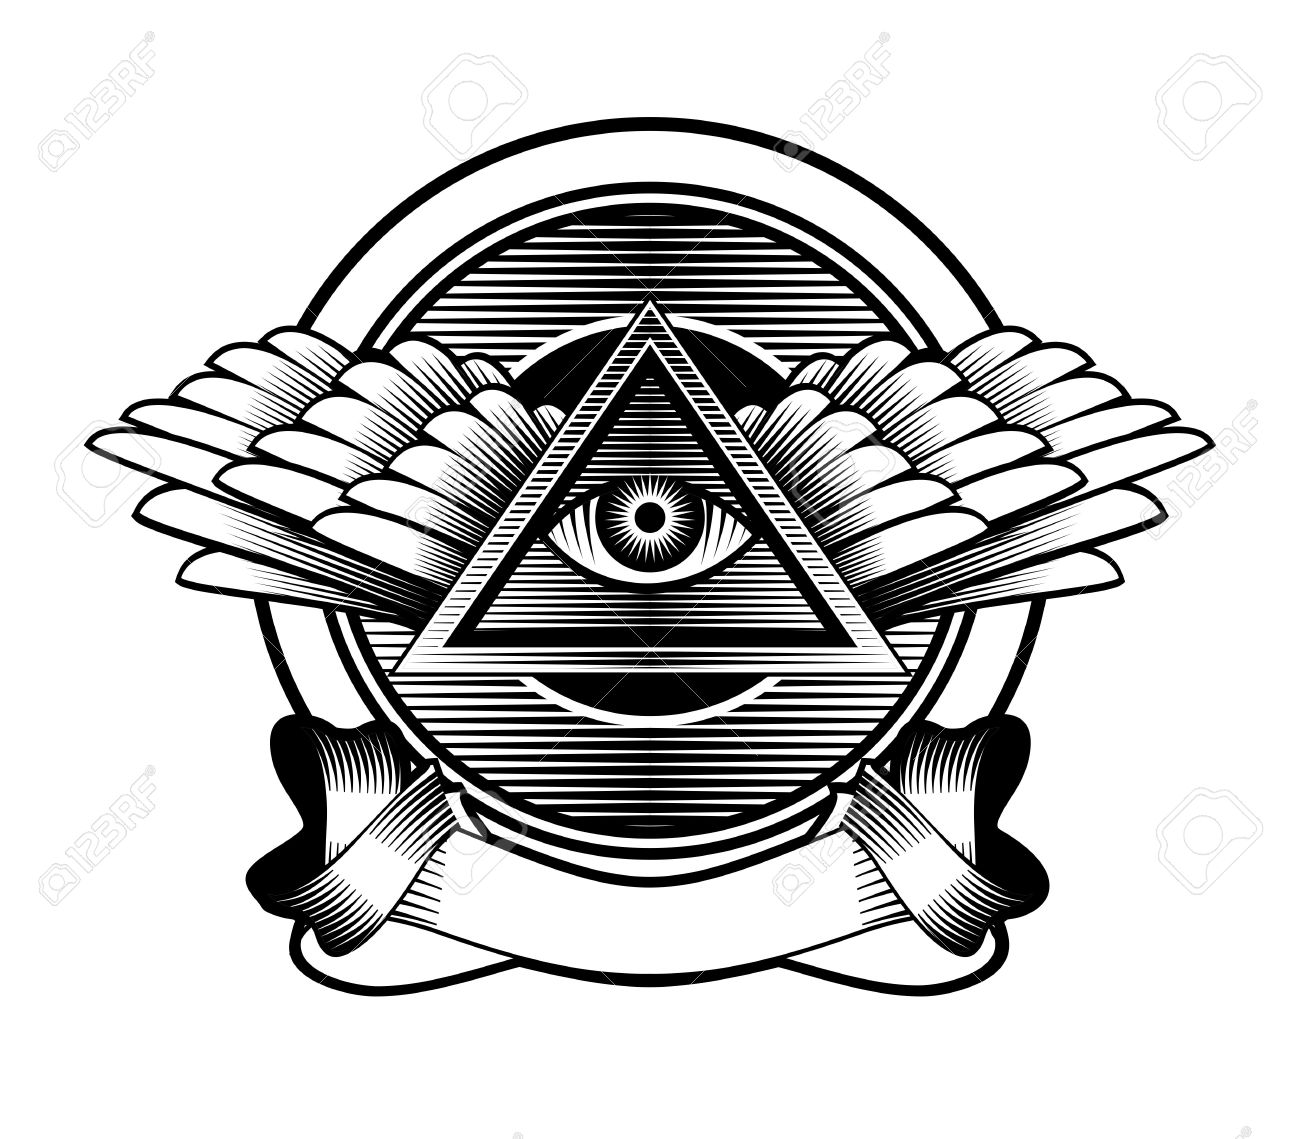 Illustration Poster Design Element Egyptian Symbol Eye In A Triangle